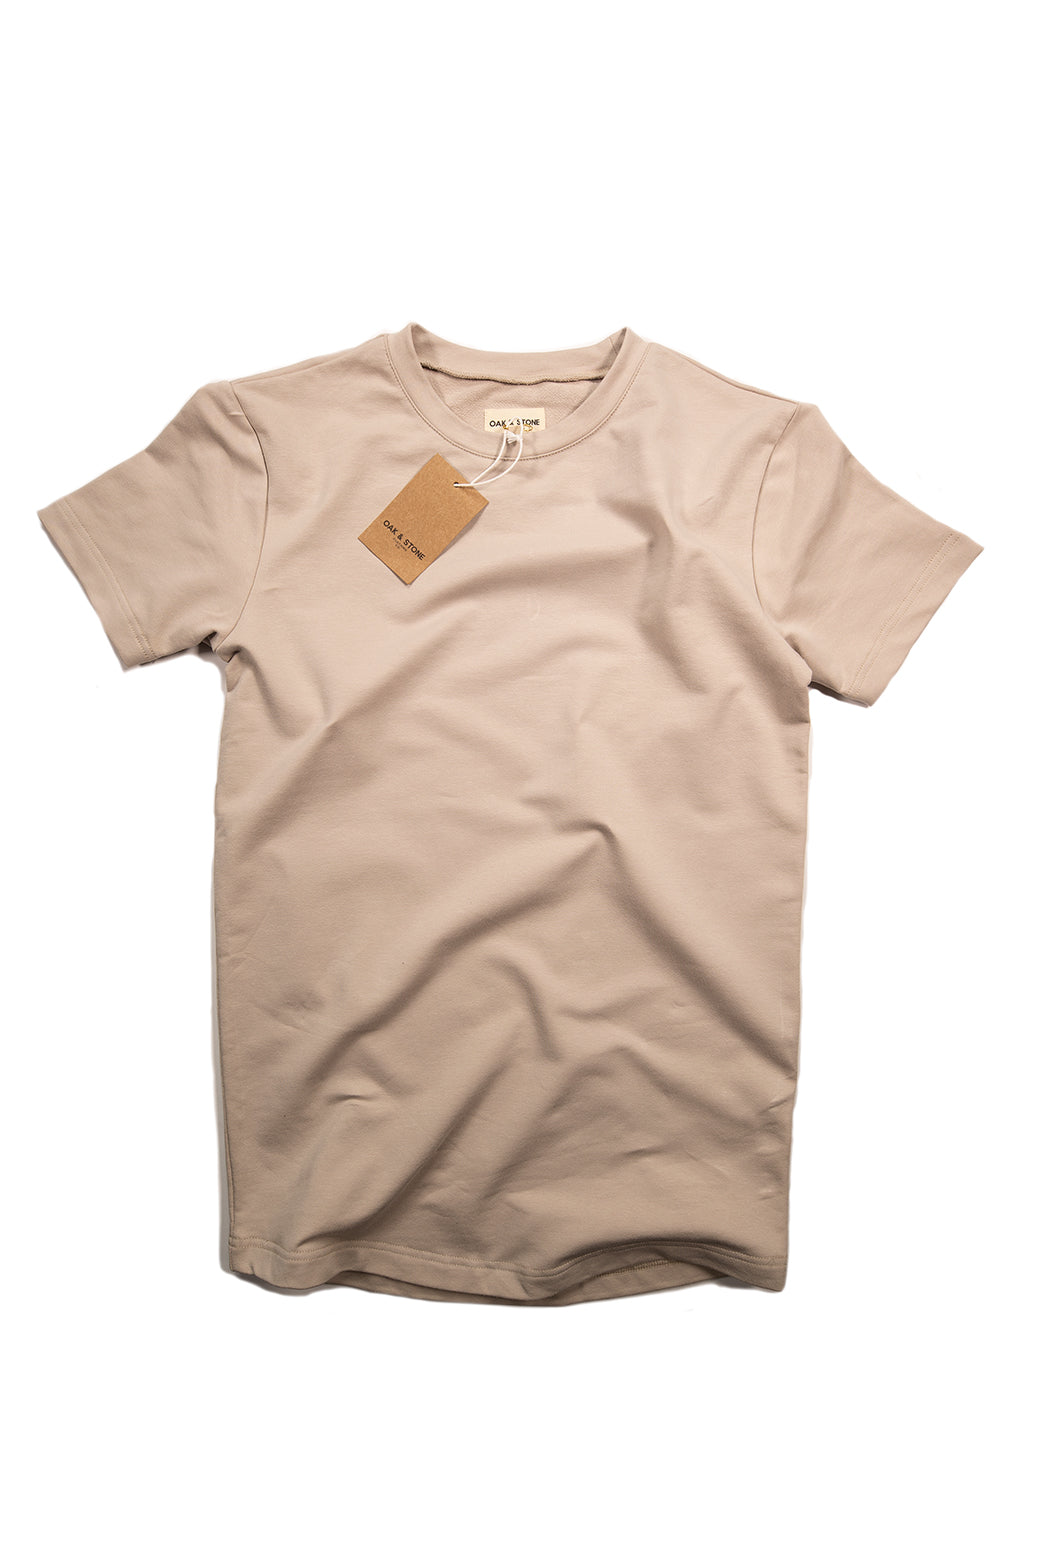 The Classic S/S Tee - Tan - Oak & Stone Clothing Co.